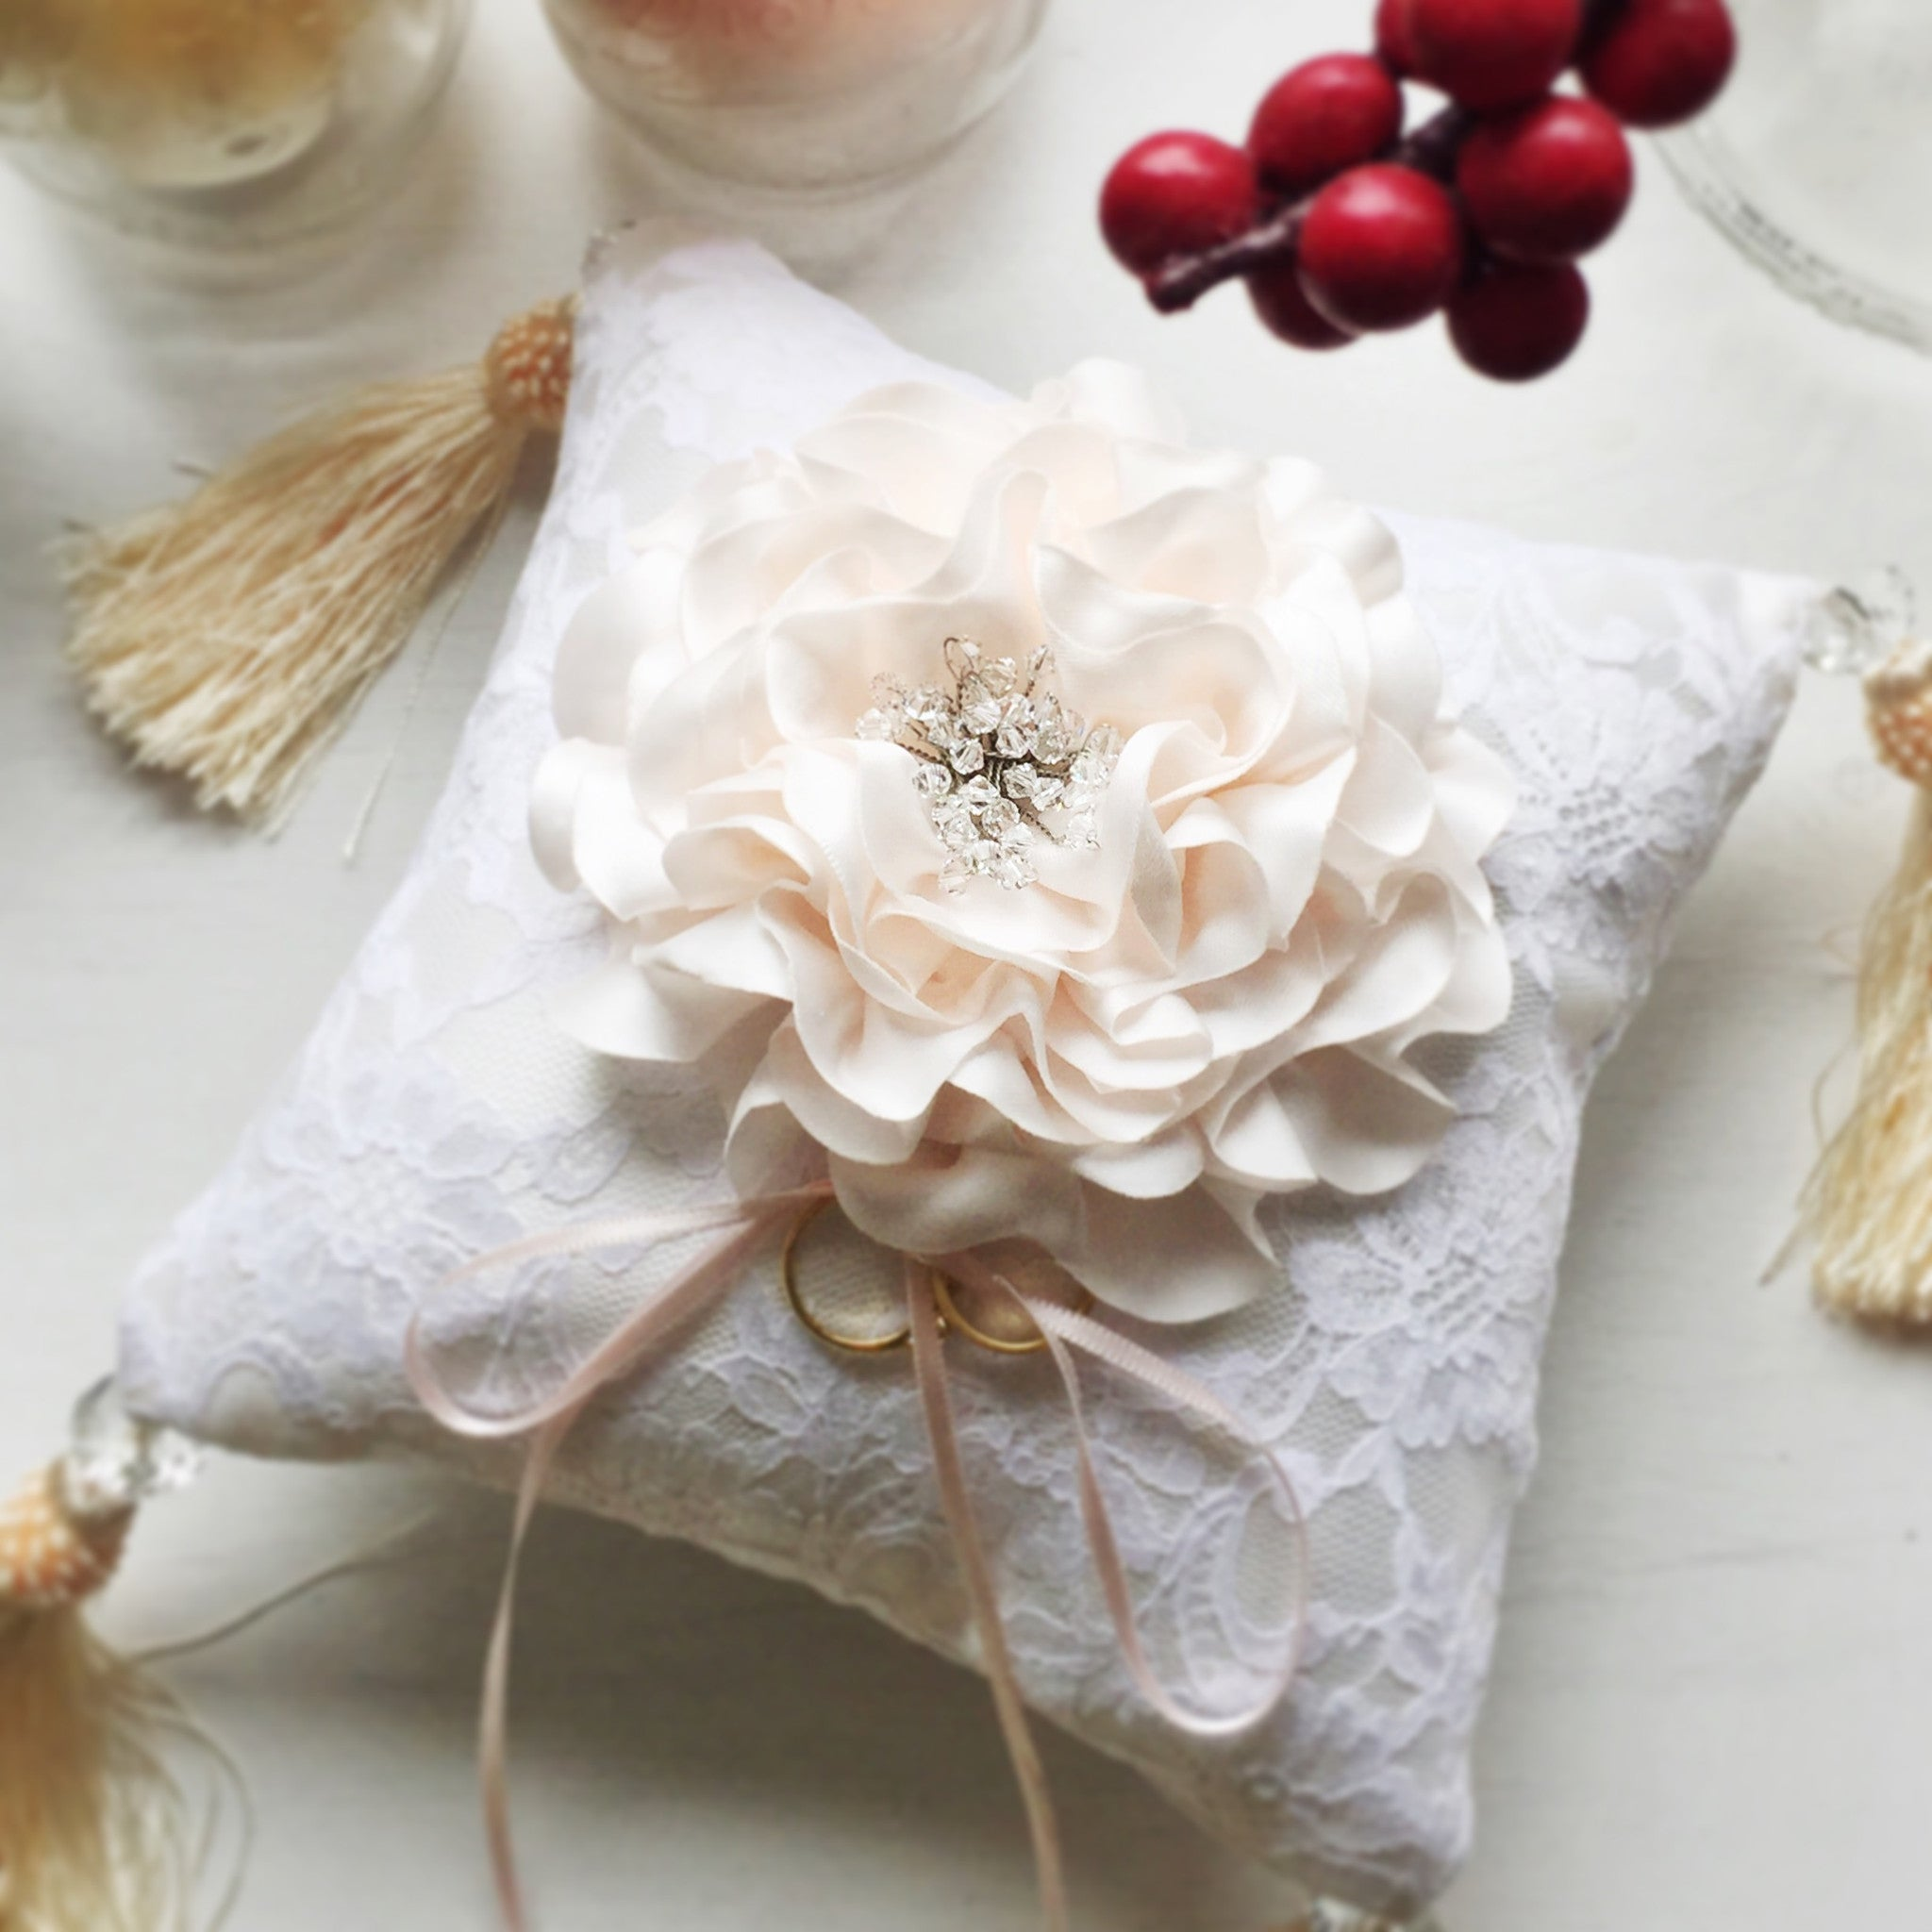 Signature Peony Ring Pillow/Cushion with Swarovski Elements